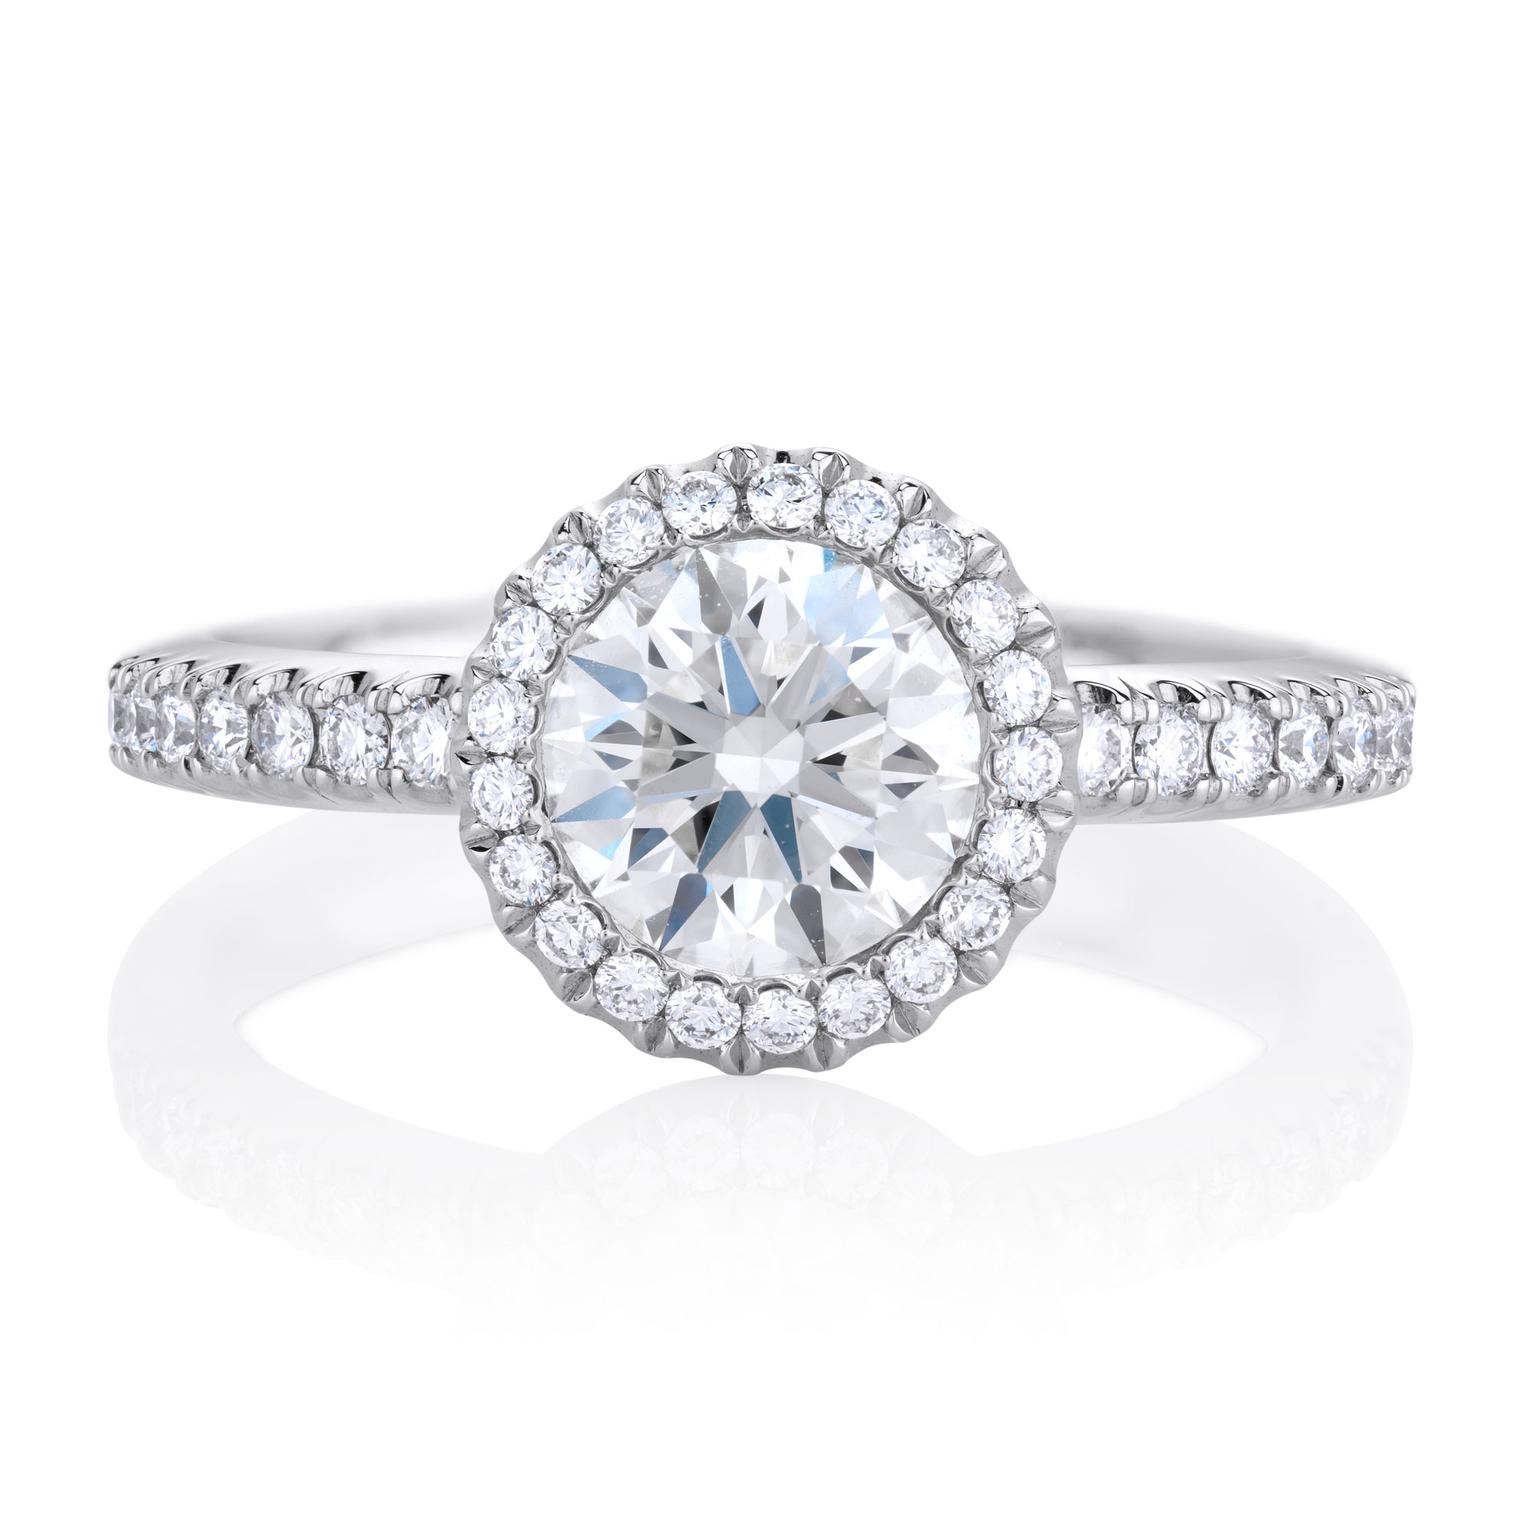 Should I buy a 1 carat diamond engagement ring or 2 carats